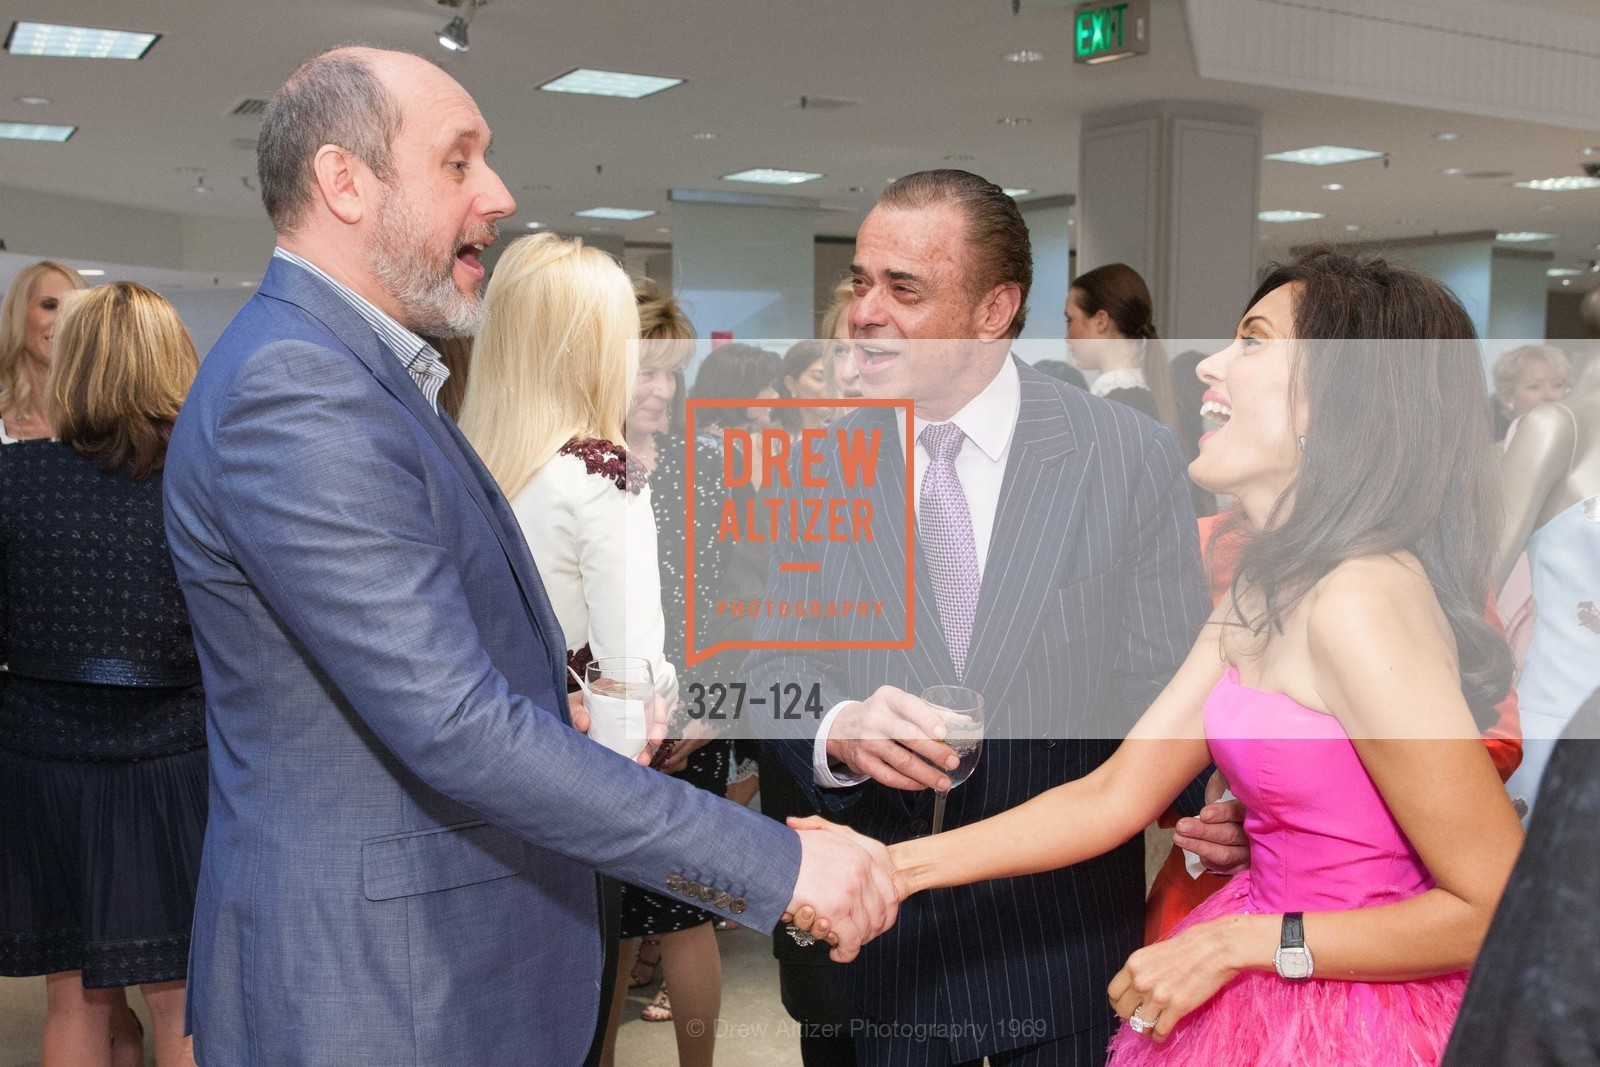 Peter Copping, Boaz Mazor, Komal Shah, Saks Fifth Avenue hosts the Peter Copping Personal Appearance, Saks Fifth Ave. 384 Post St, May 20th, 2015